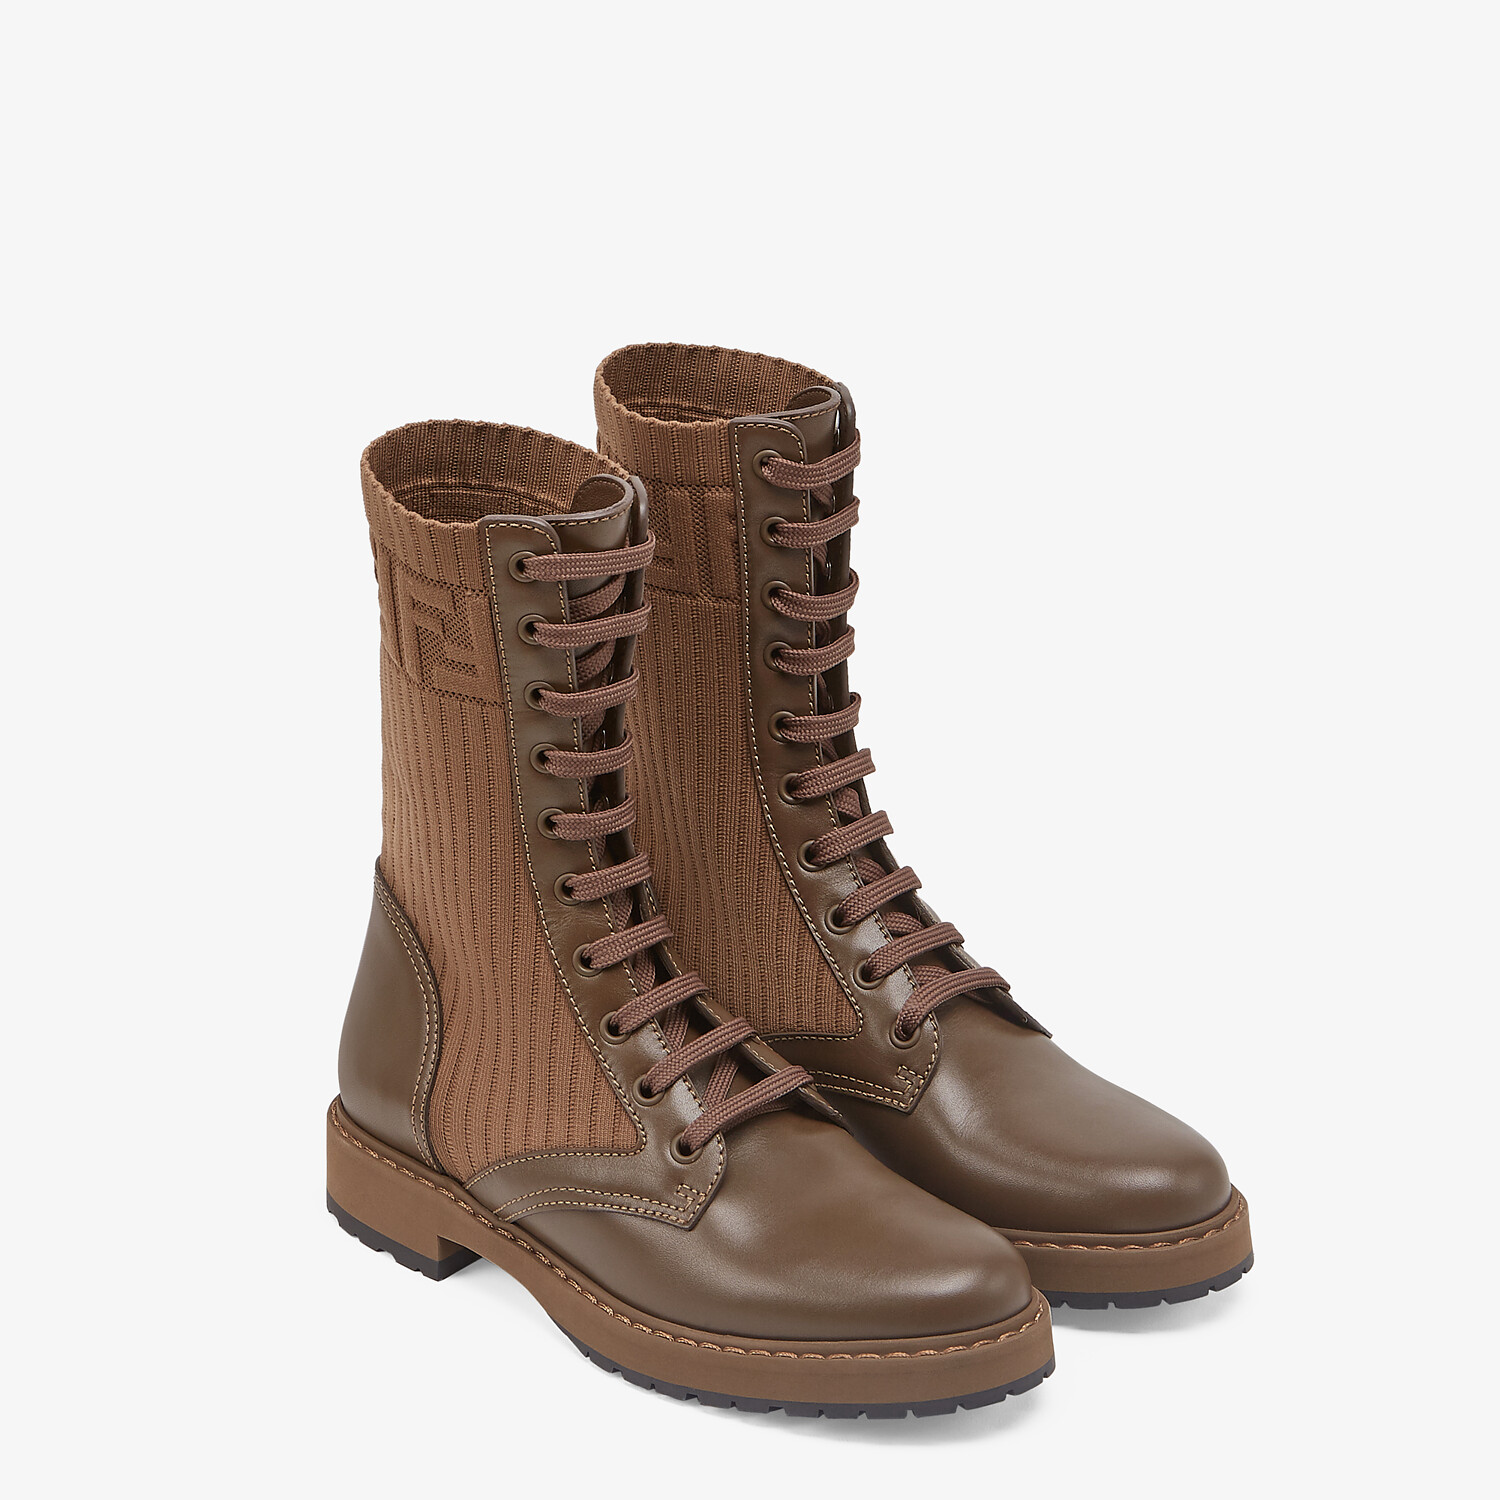 FENDI ROCKOKO - Brown leather biker boots with stretch fabric - view 4 detail